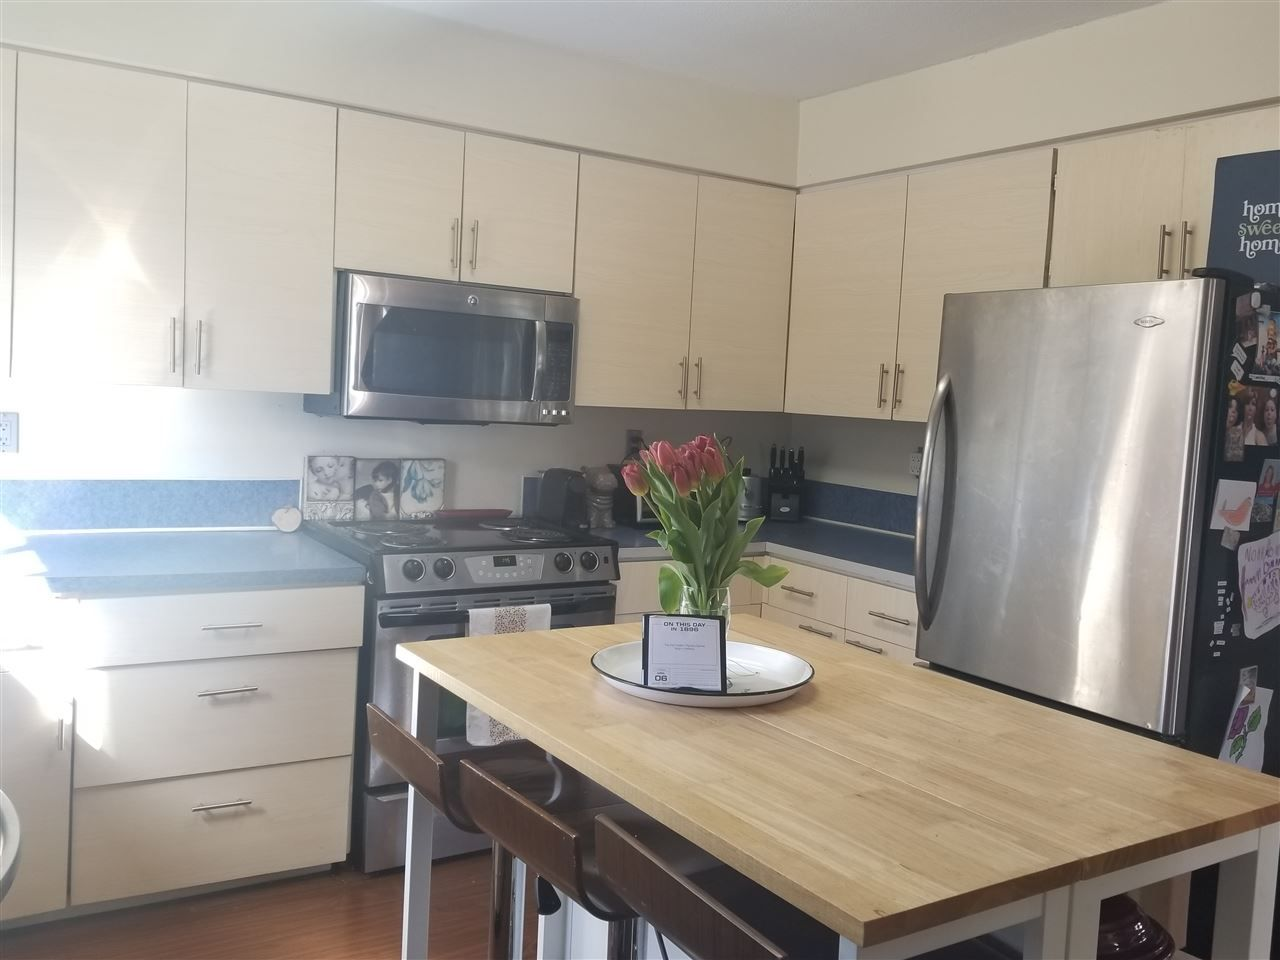 Photo 2: Photos: 32325 BRANT Avenue in Mission: Mission BC 1/2 Duplex for sale : MLS®# R2563803